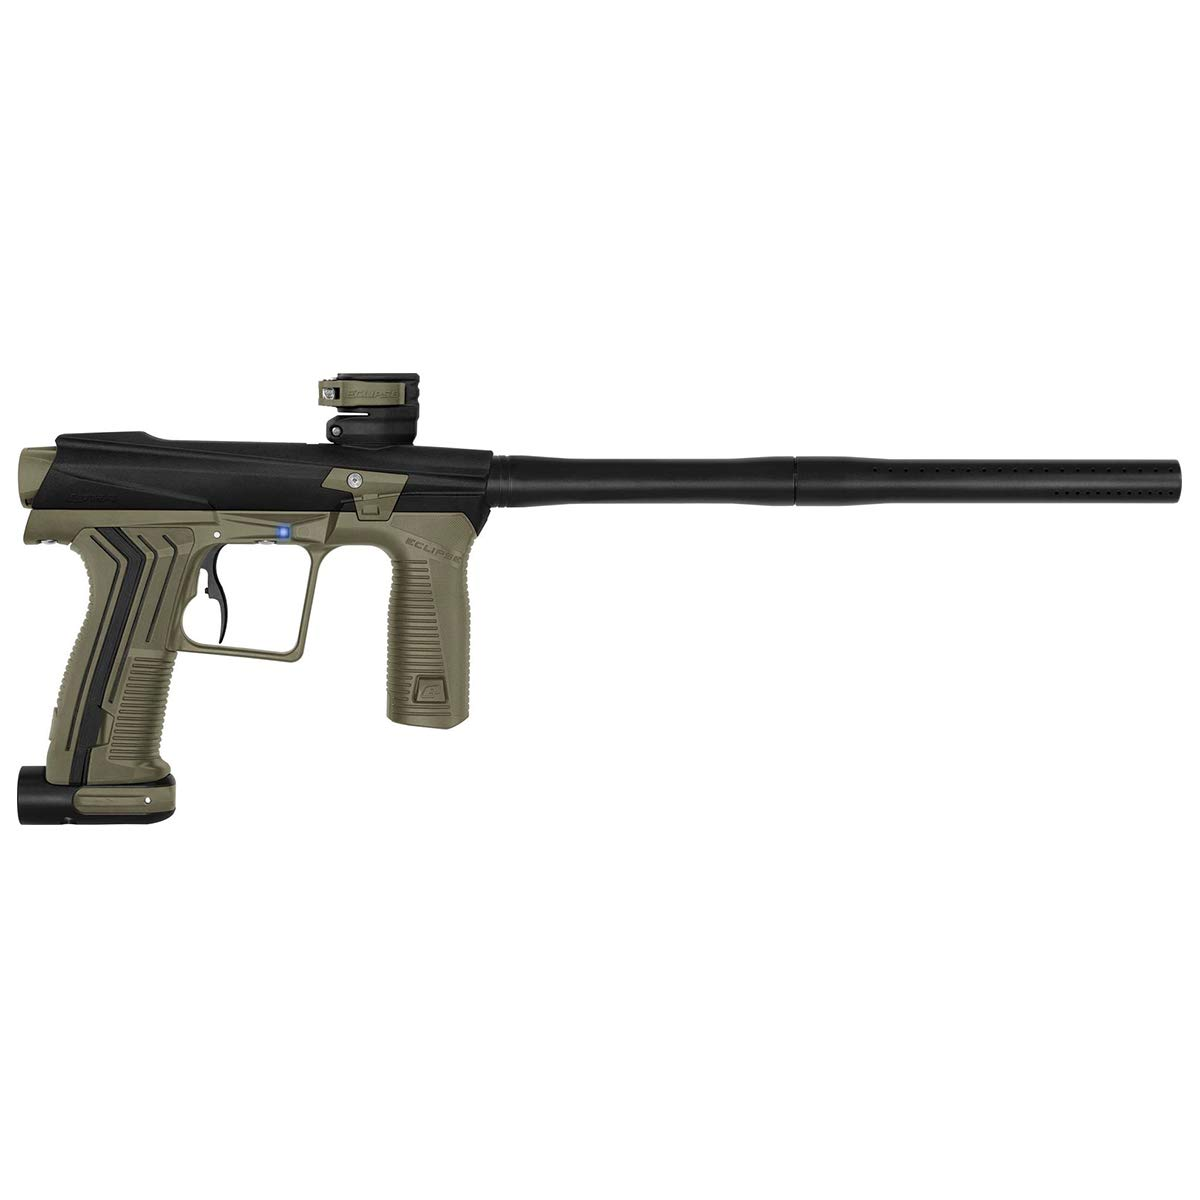 Planet Eclipse Etha2 PAL Paintball Marker - Black/Earth